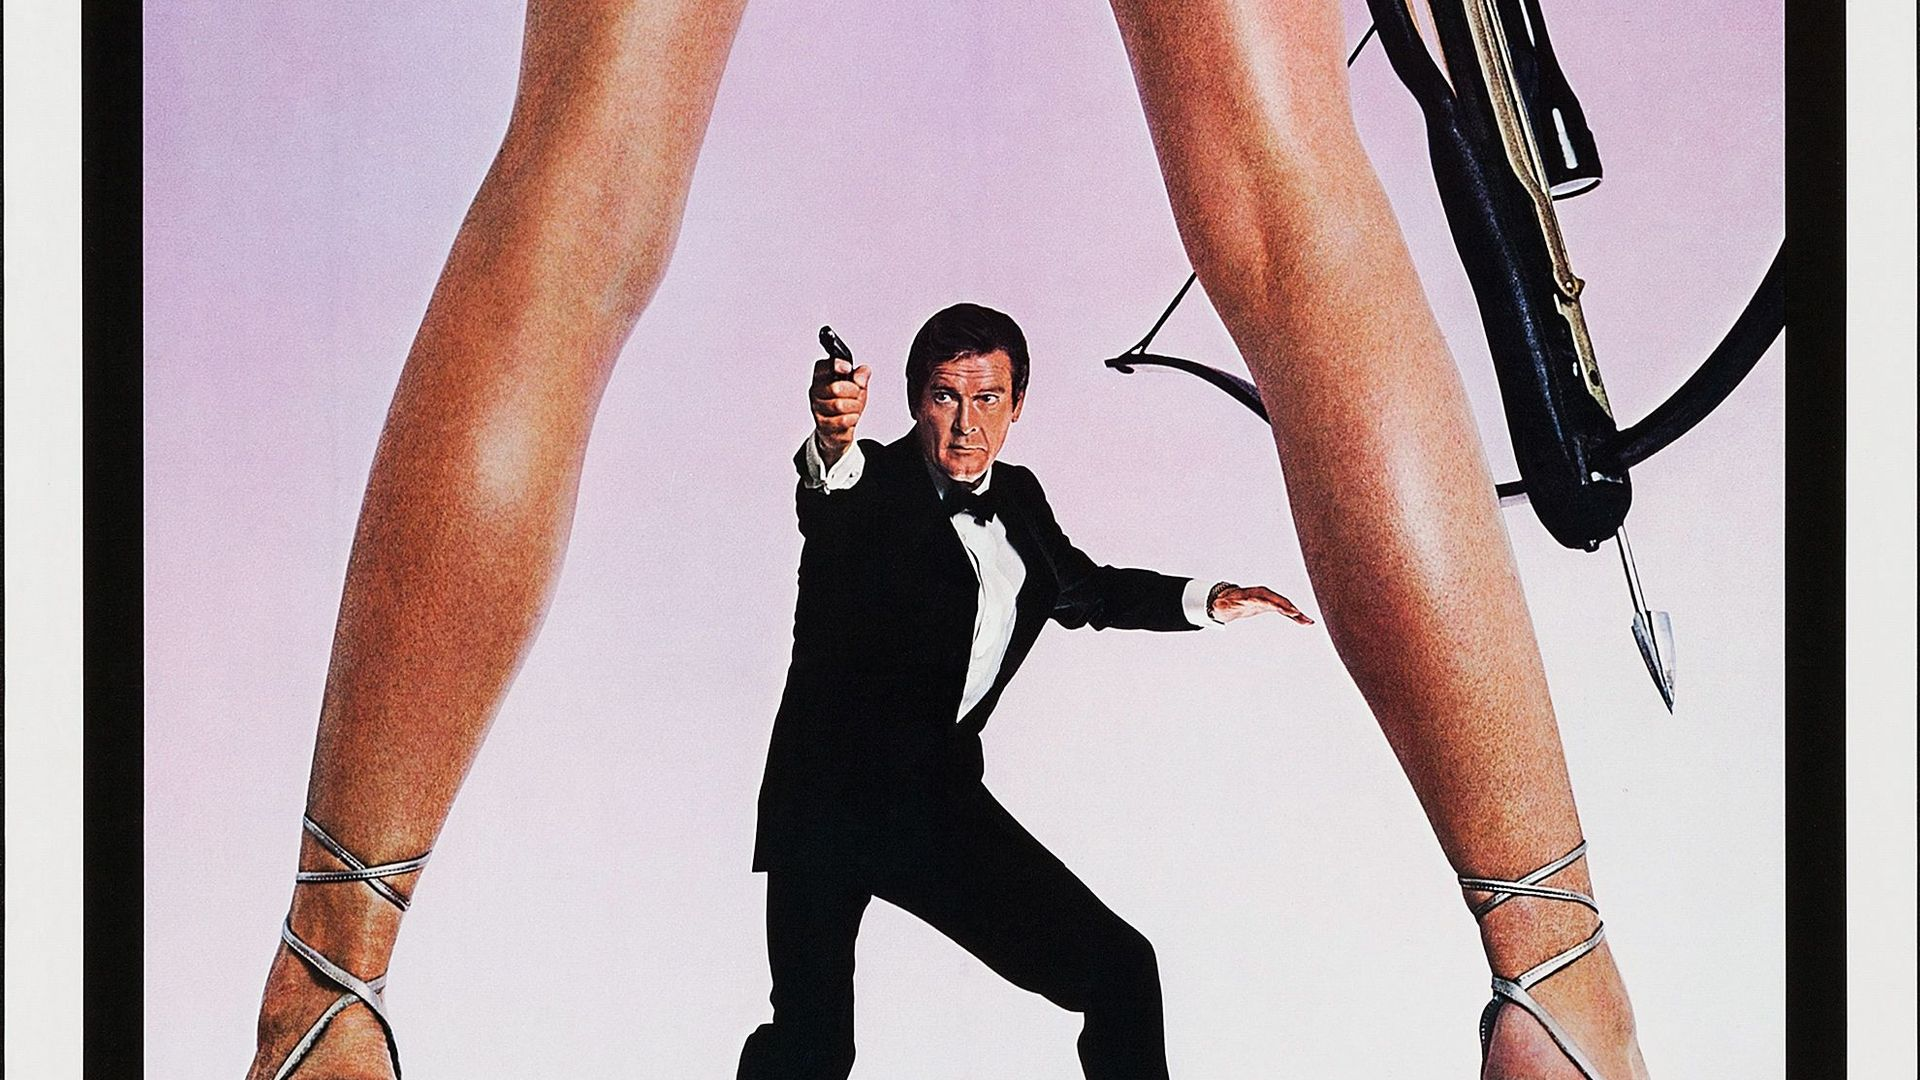 Bond Posters: For Your Eyes Only